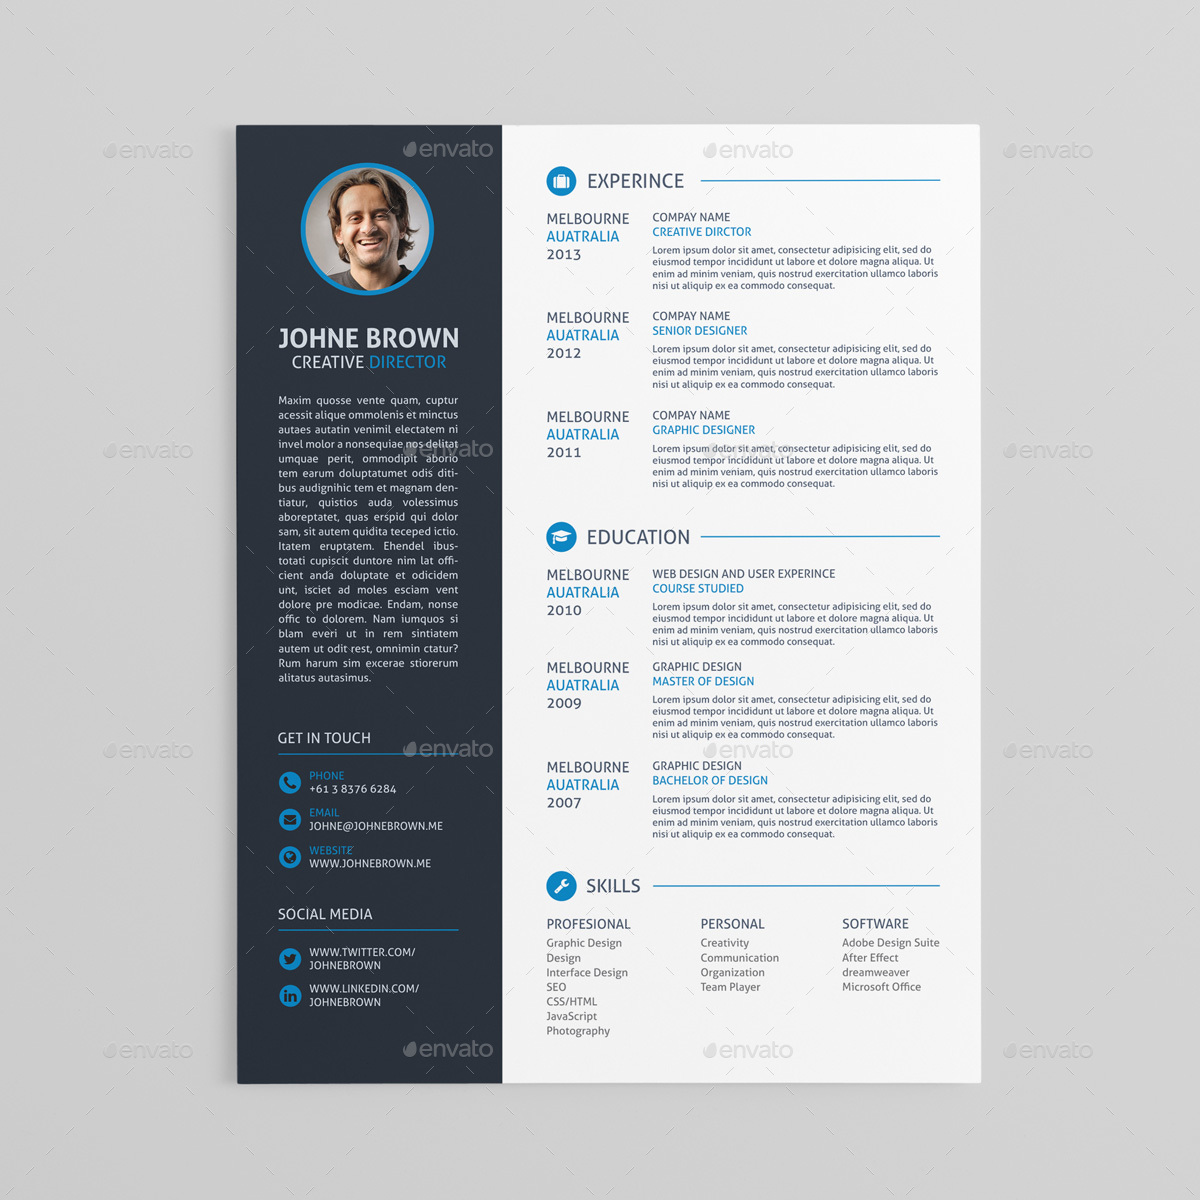 30 Free Psd Cv/ Resume Templates + Cover Letters To Download! | Free